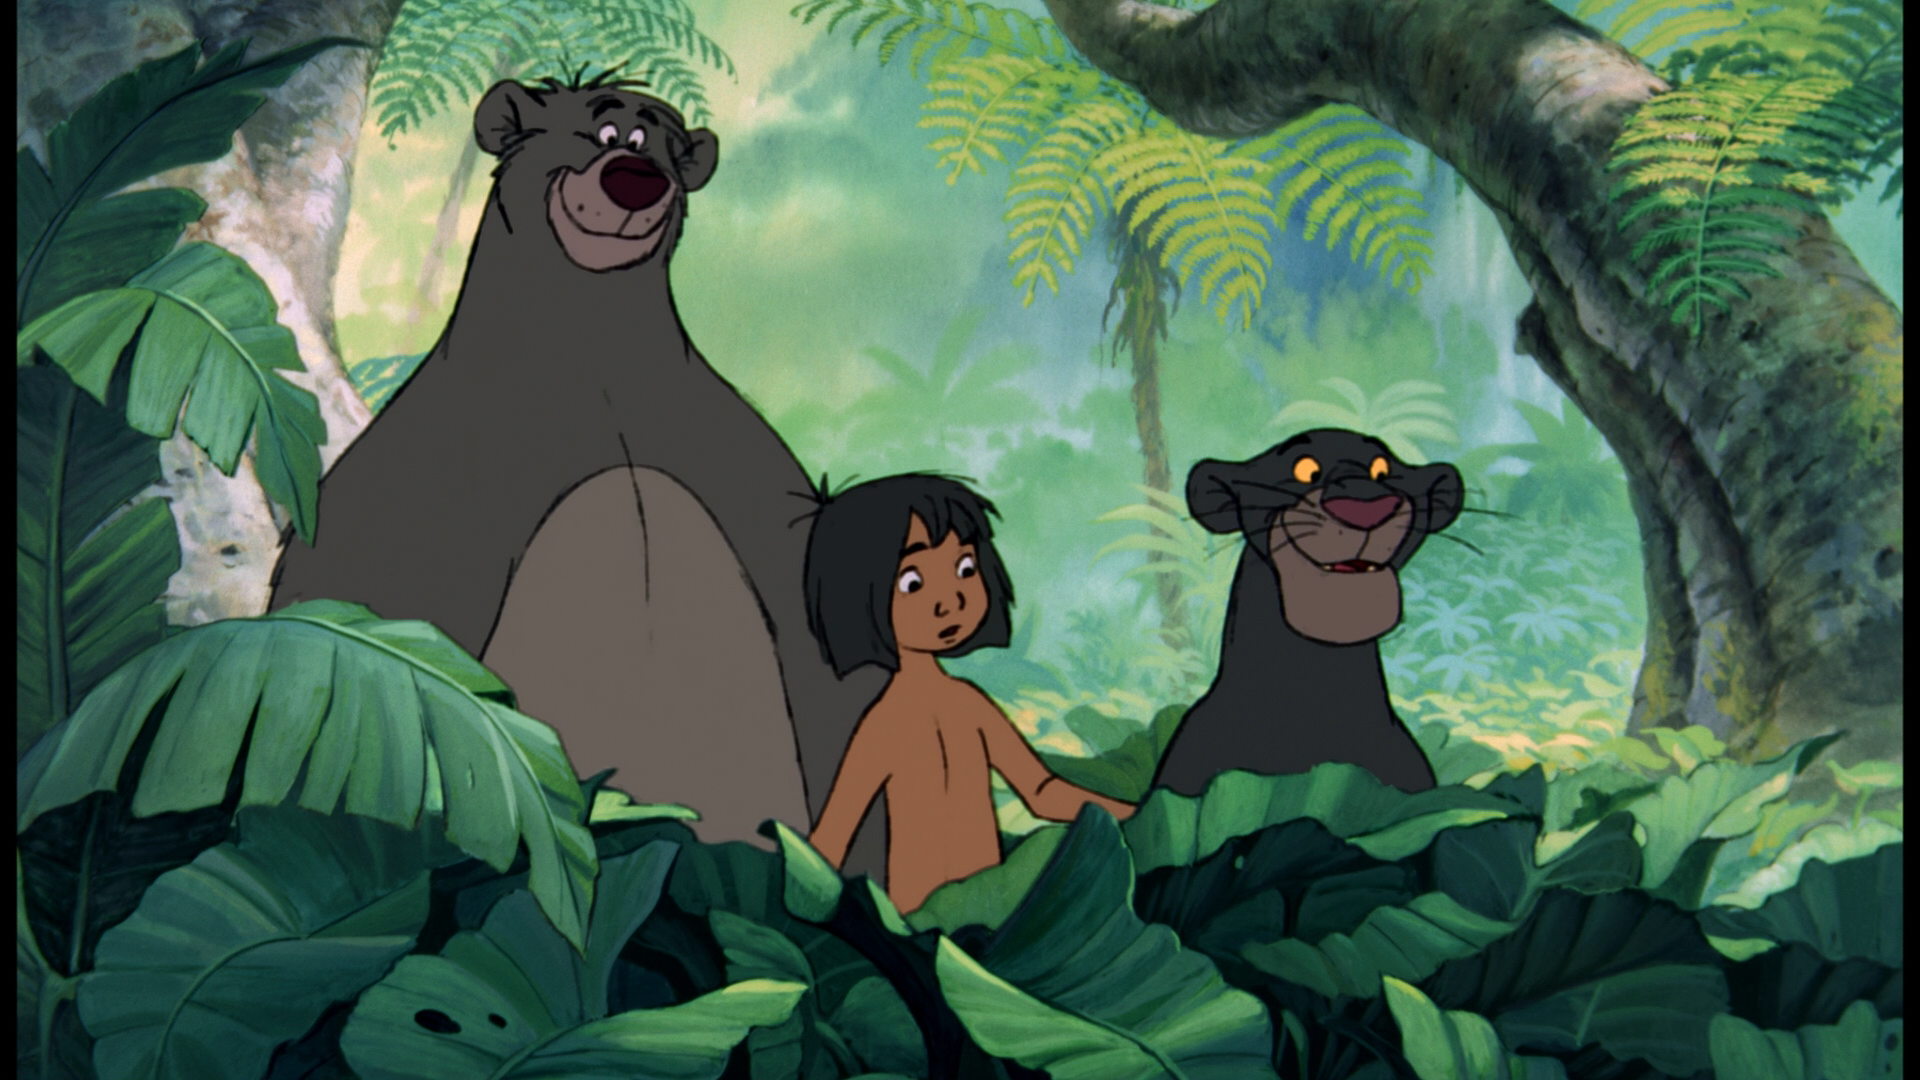 We Compare The Cast Of Disney S The Jungle Book With That Of Jungle Book Origins The Other Jungle Book Adap Disney Dschungelbuch Dschungelbuch Disney Spruche